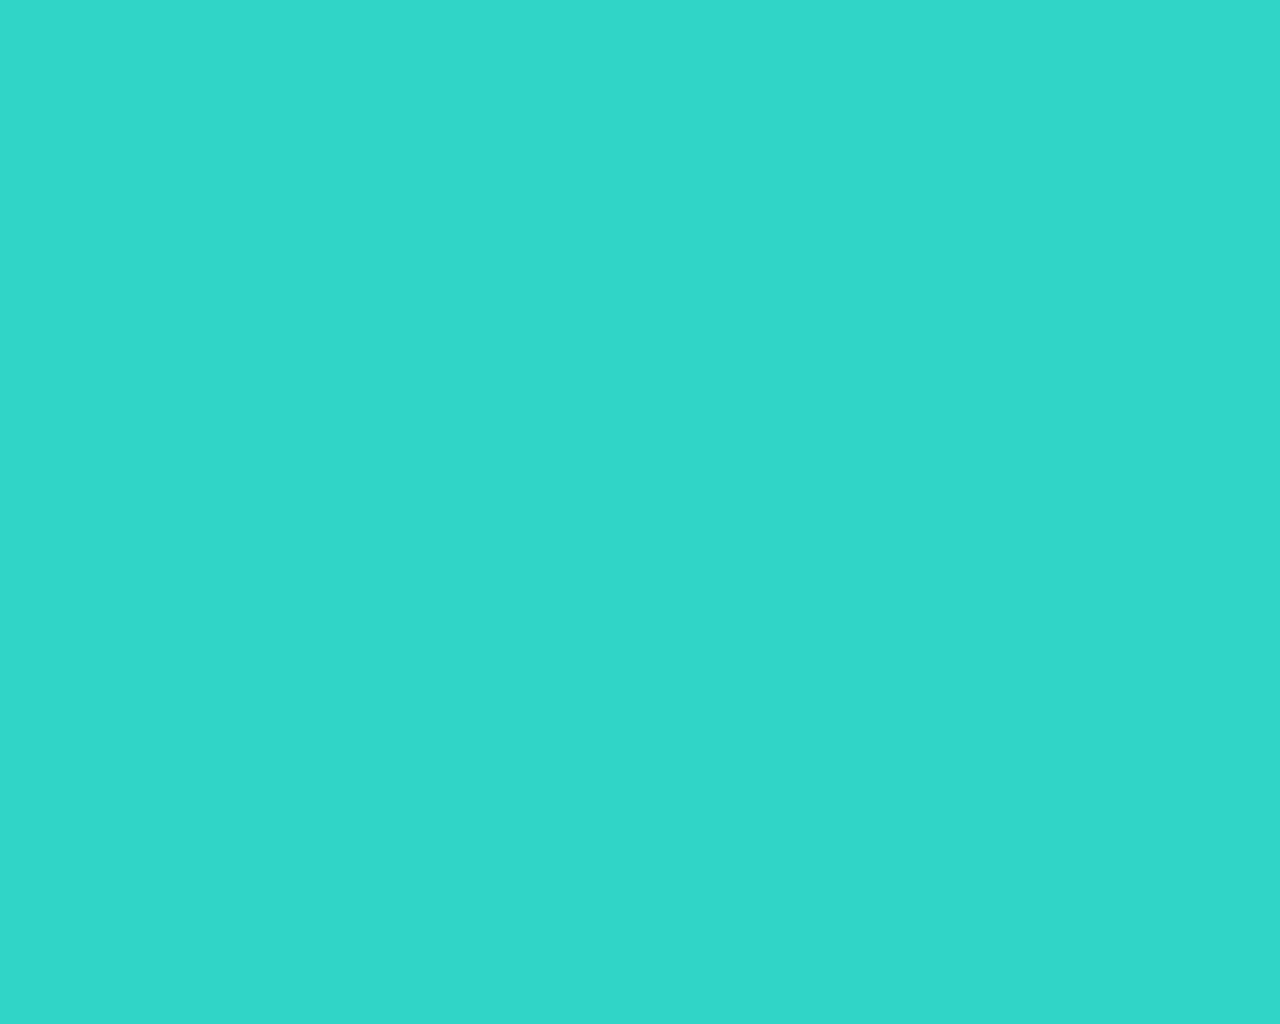 turquoise-color-wallpaper-4